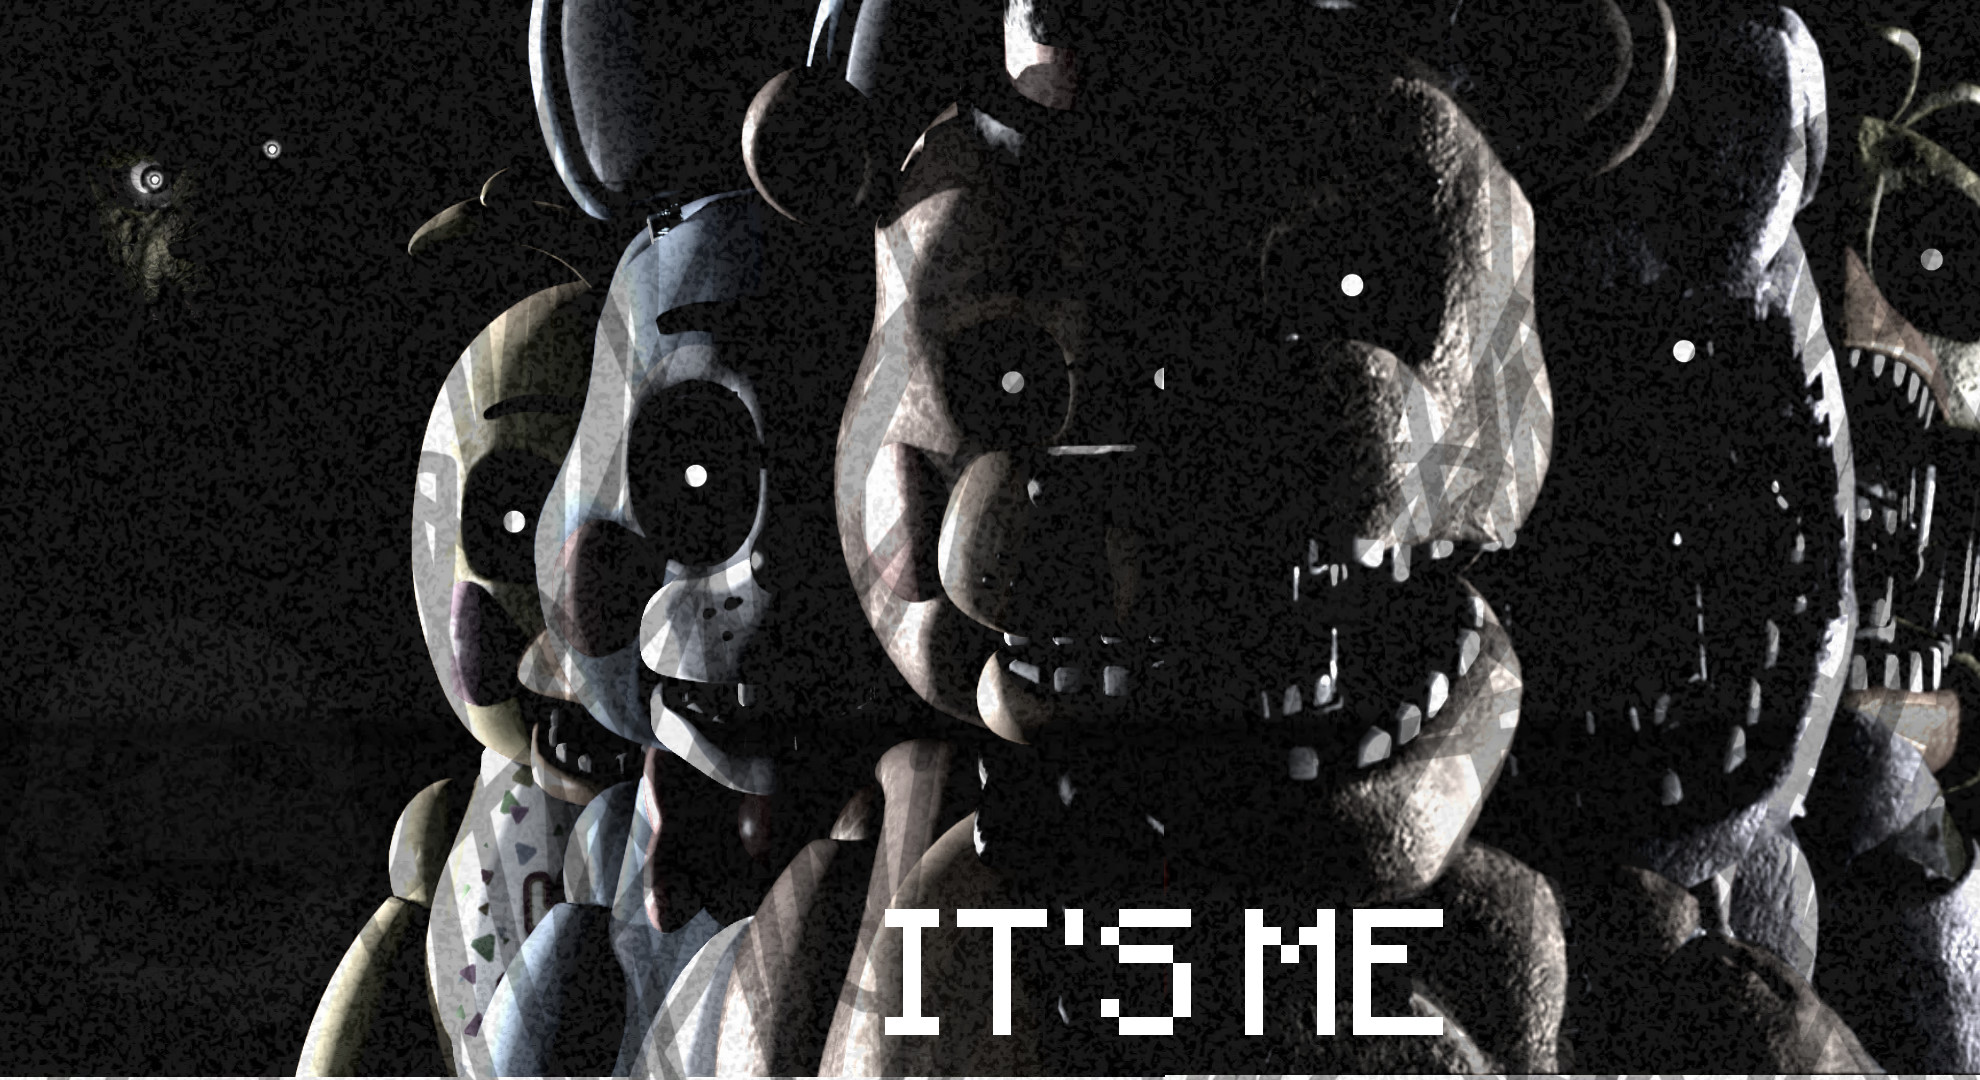 My Own FNAF Wallpaper. (You can download it if you'd like) …